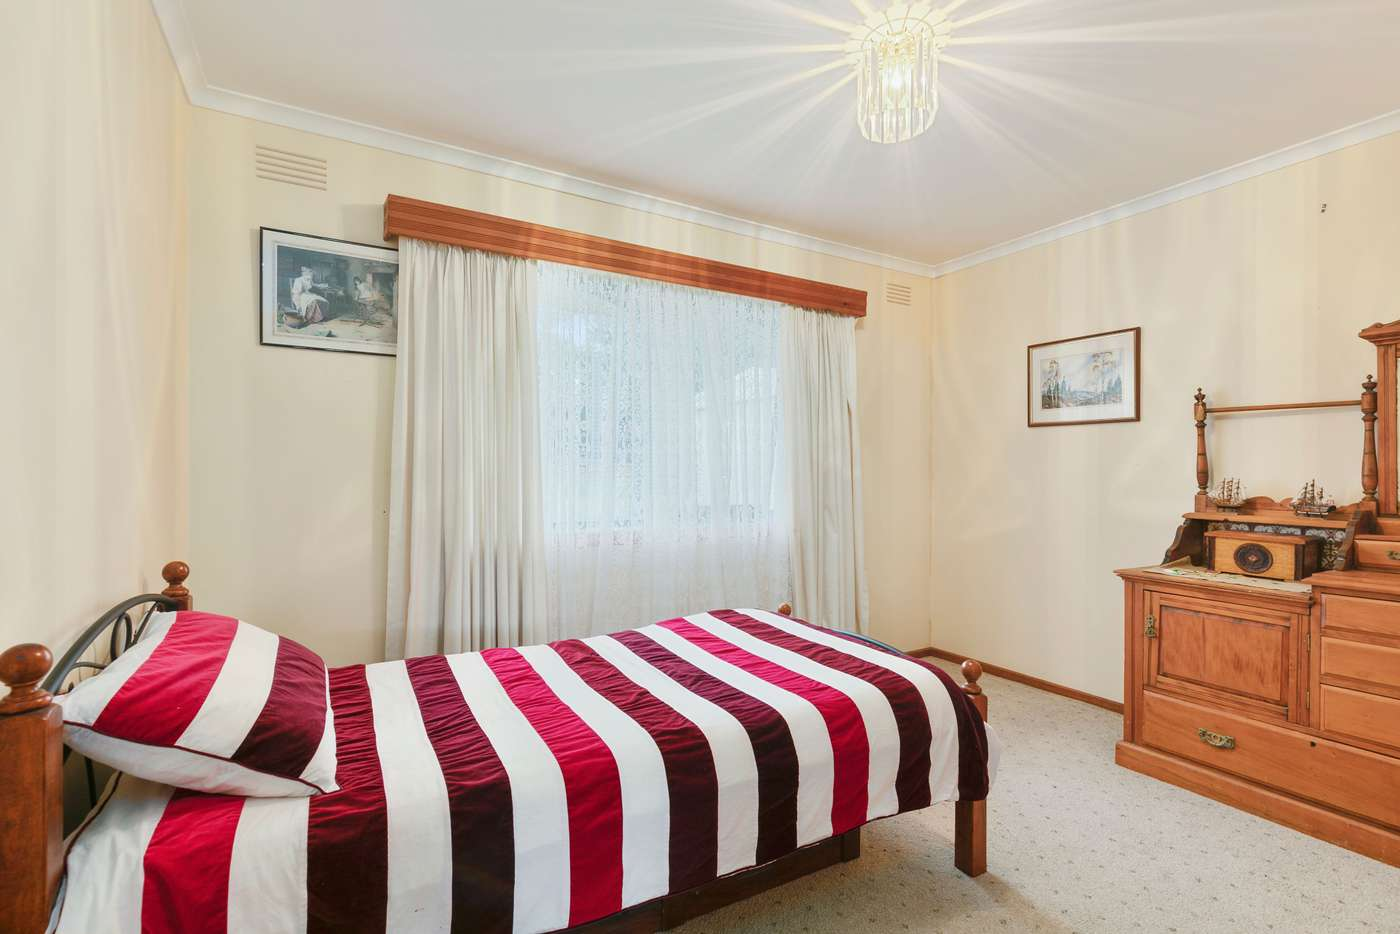 Seventh view of Homely house listing, 56 Lock Road, Rhyll VIC 3923